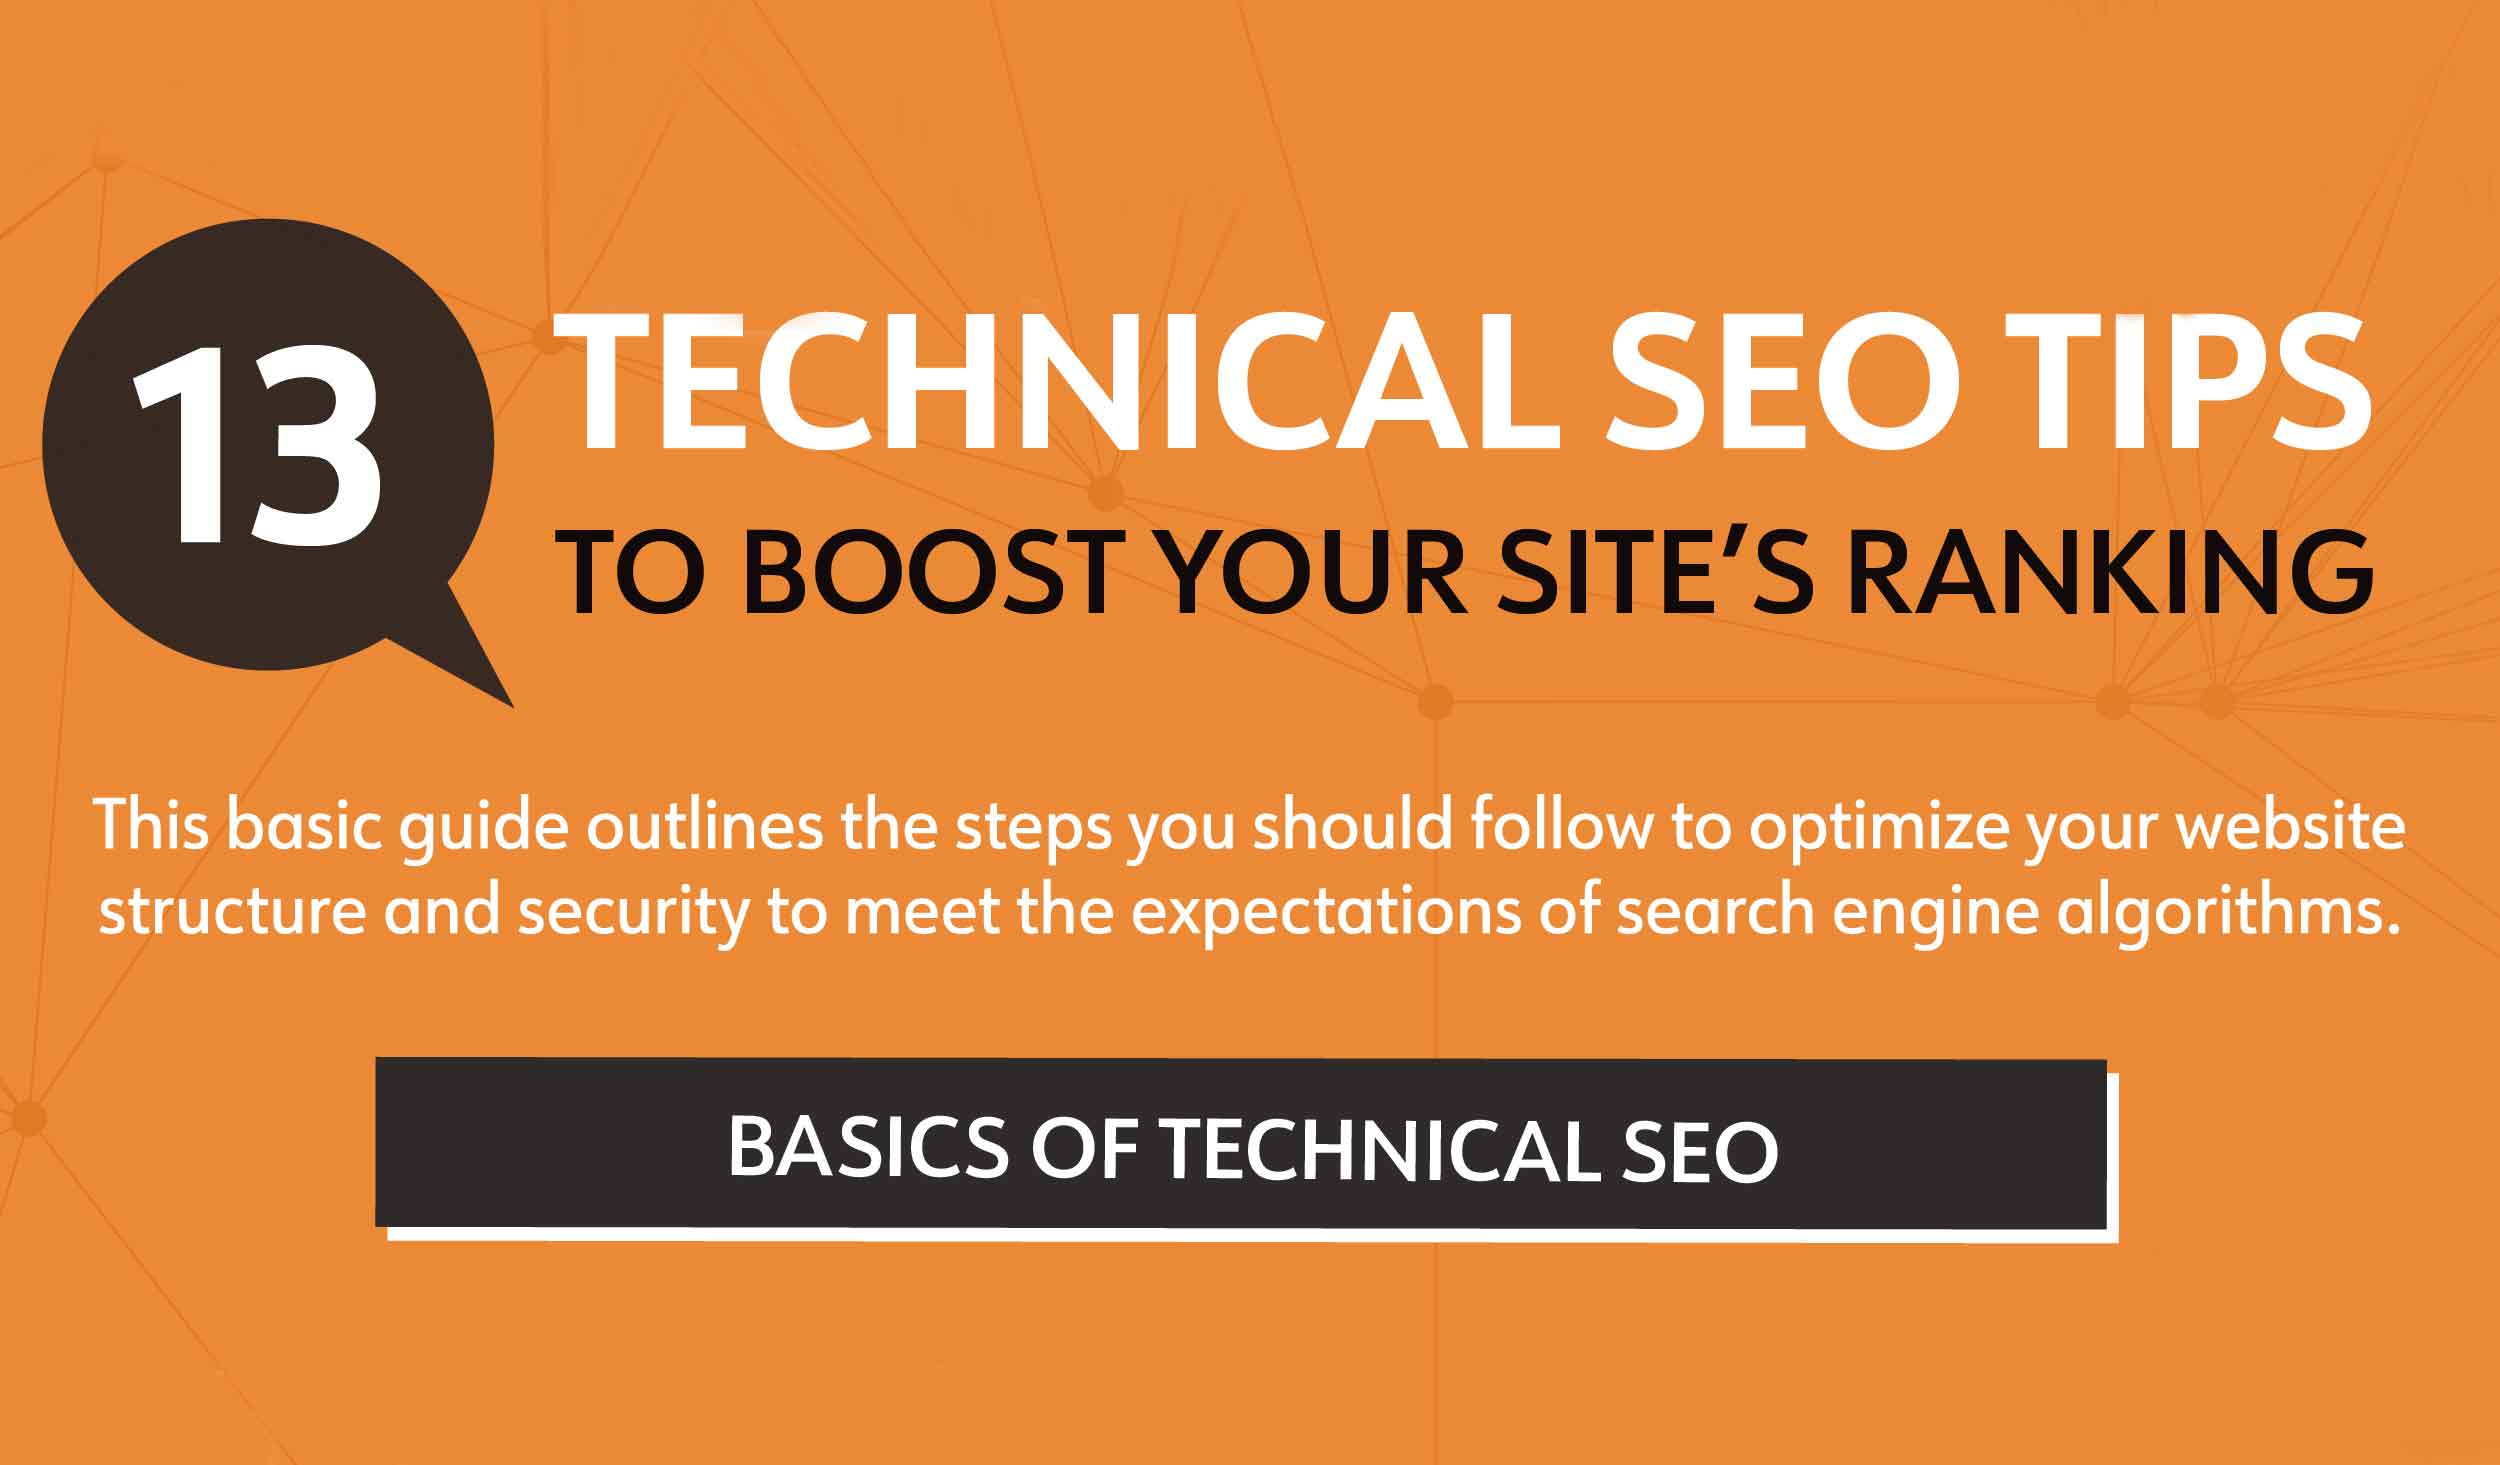 Technical-SEO-tips-to-boost-website-ranking